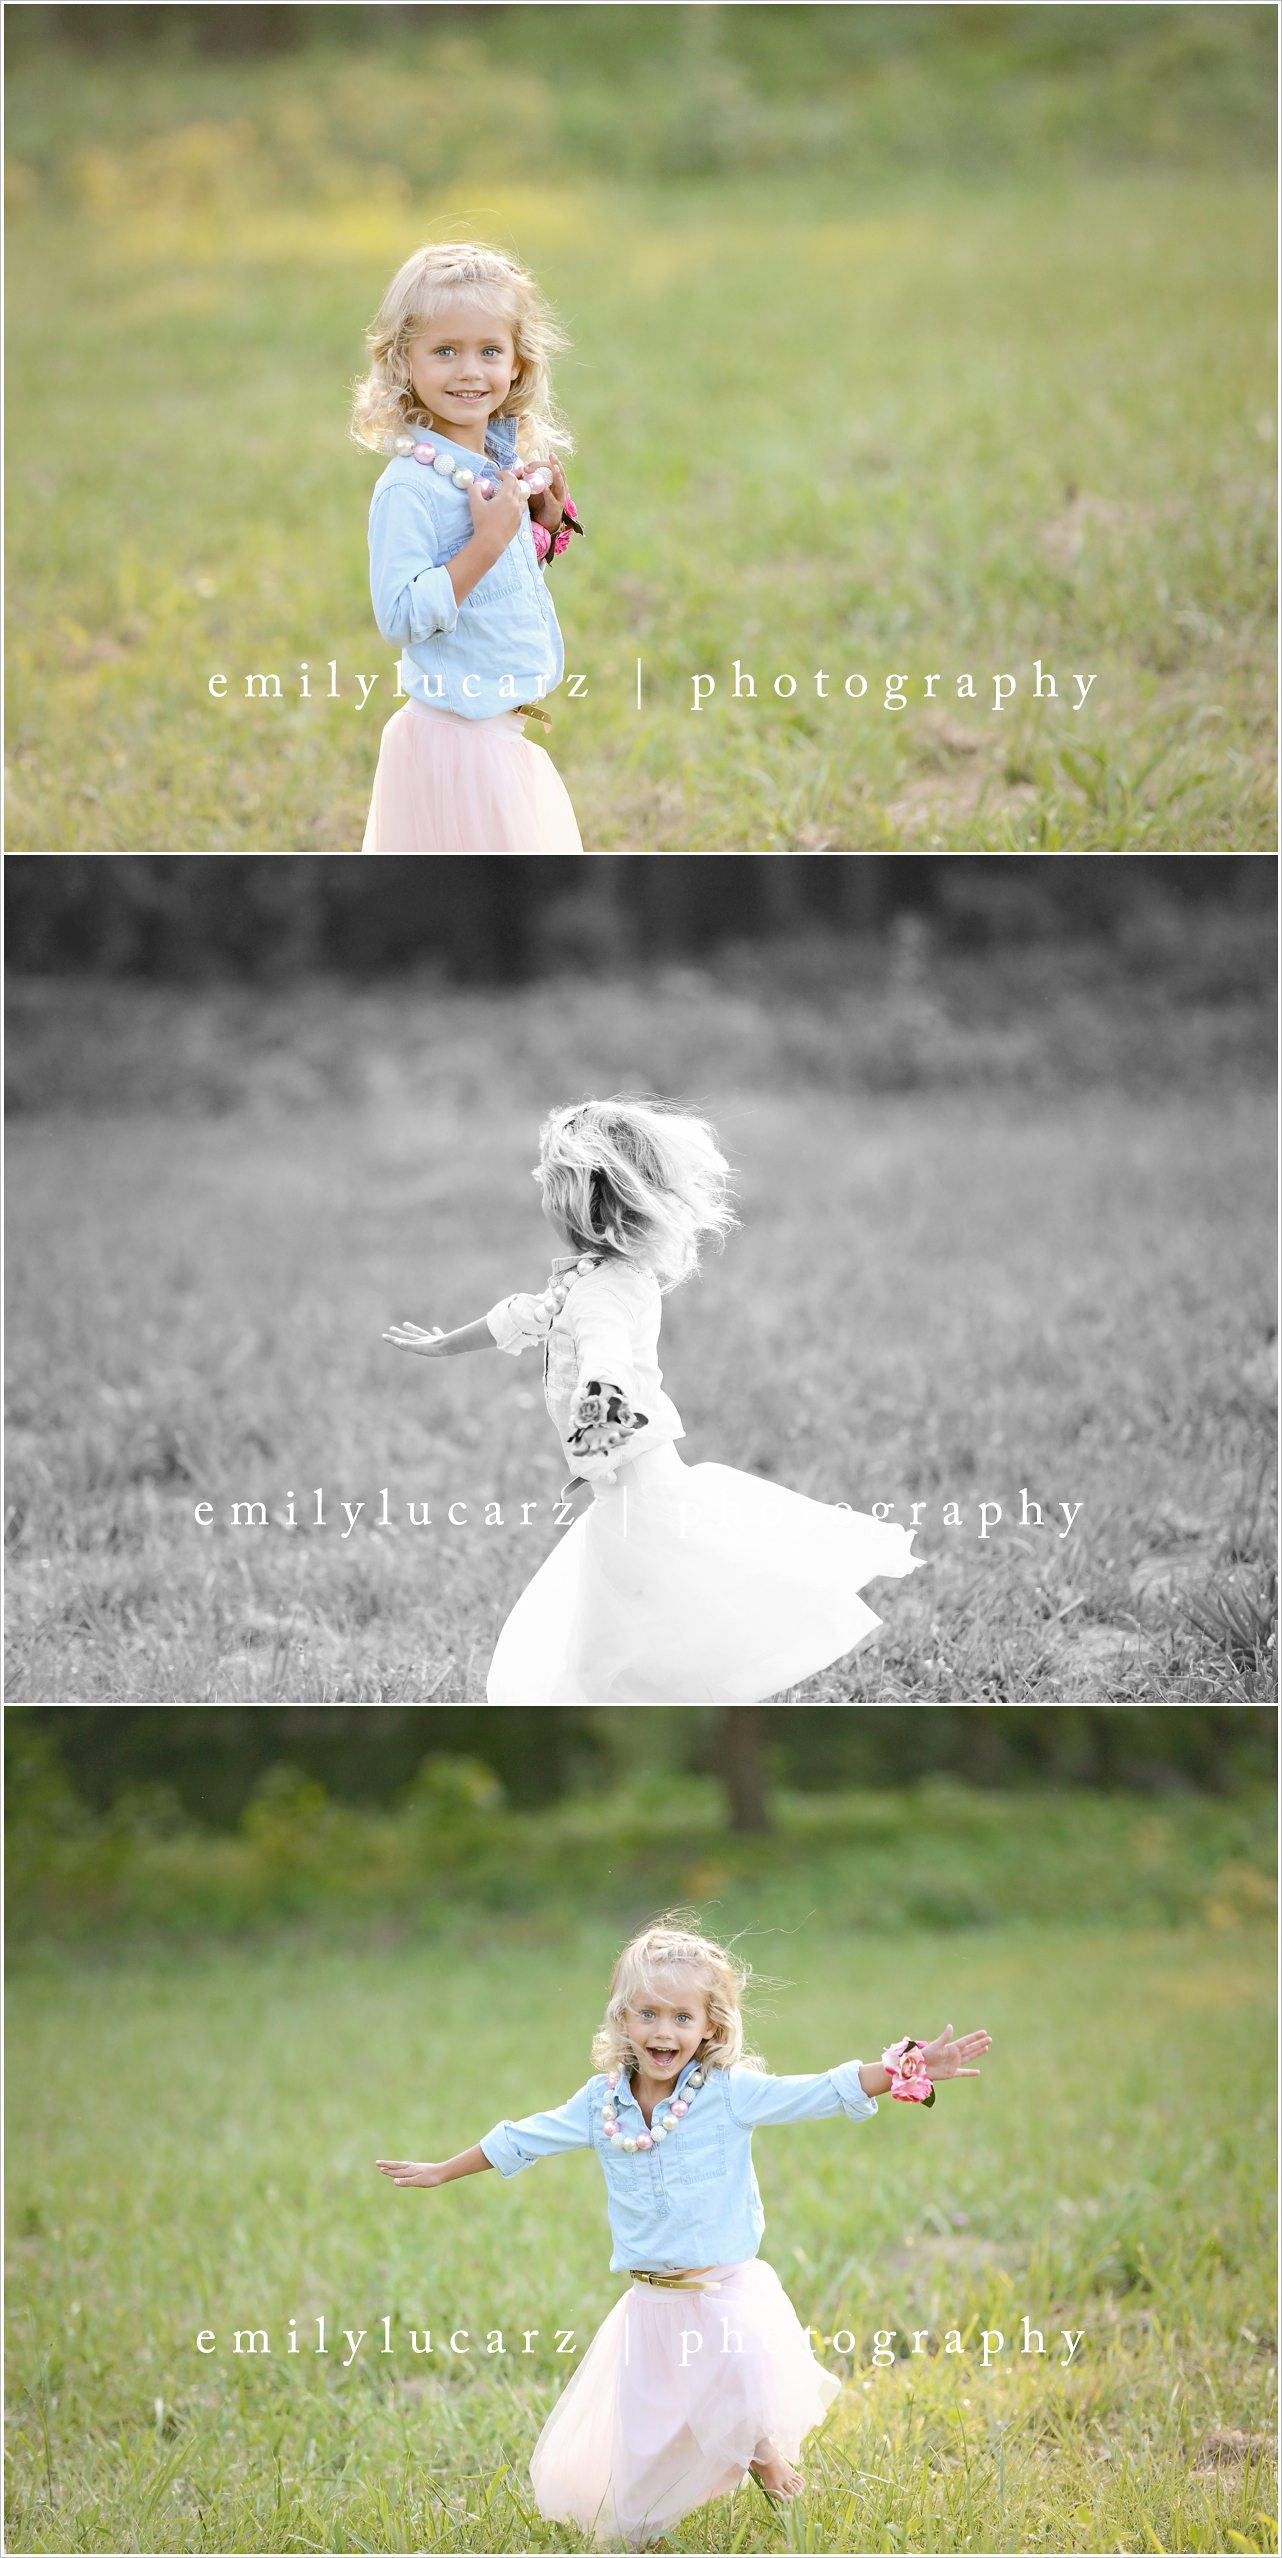 Family photo session in St. Louis Missouri